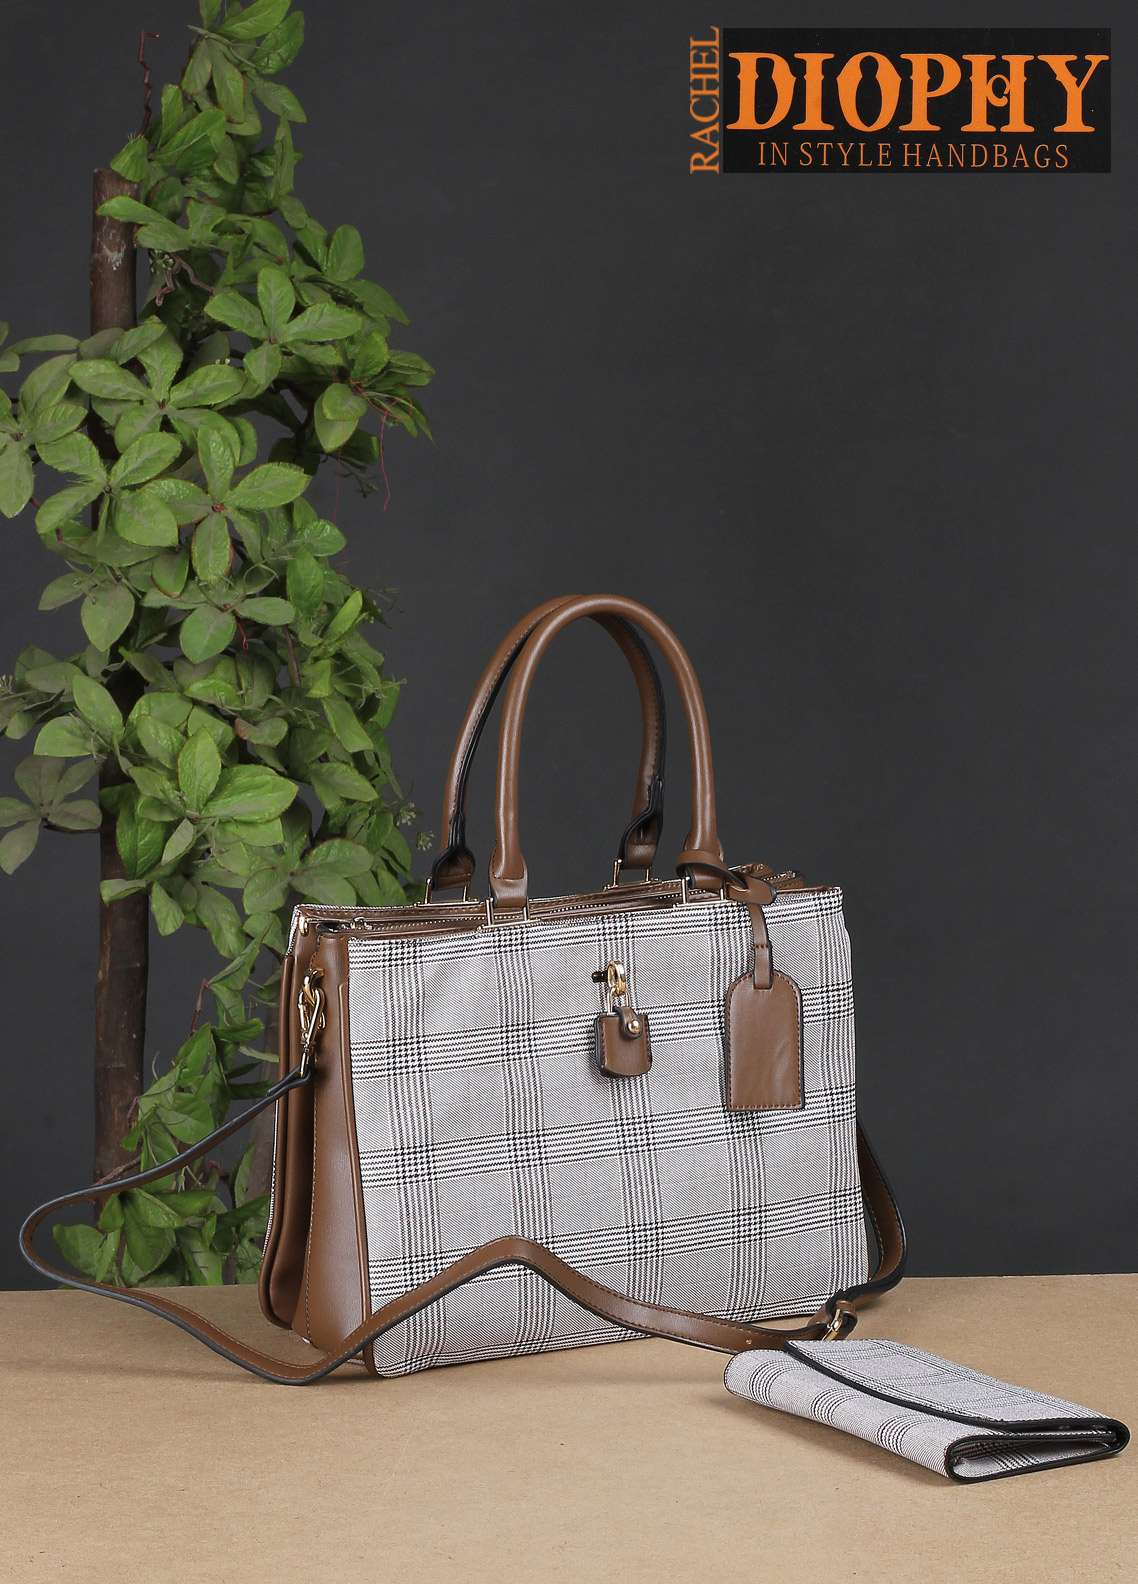 Rachel Diophy PU Leather Satchels Handbags for Women - Brown with Printed Textured